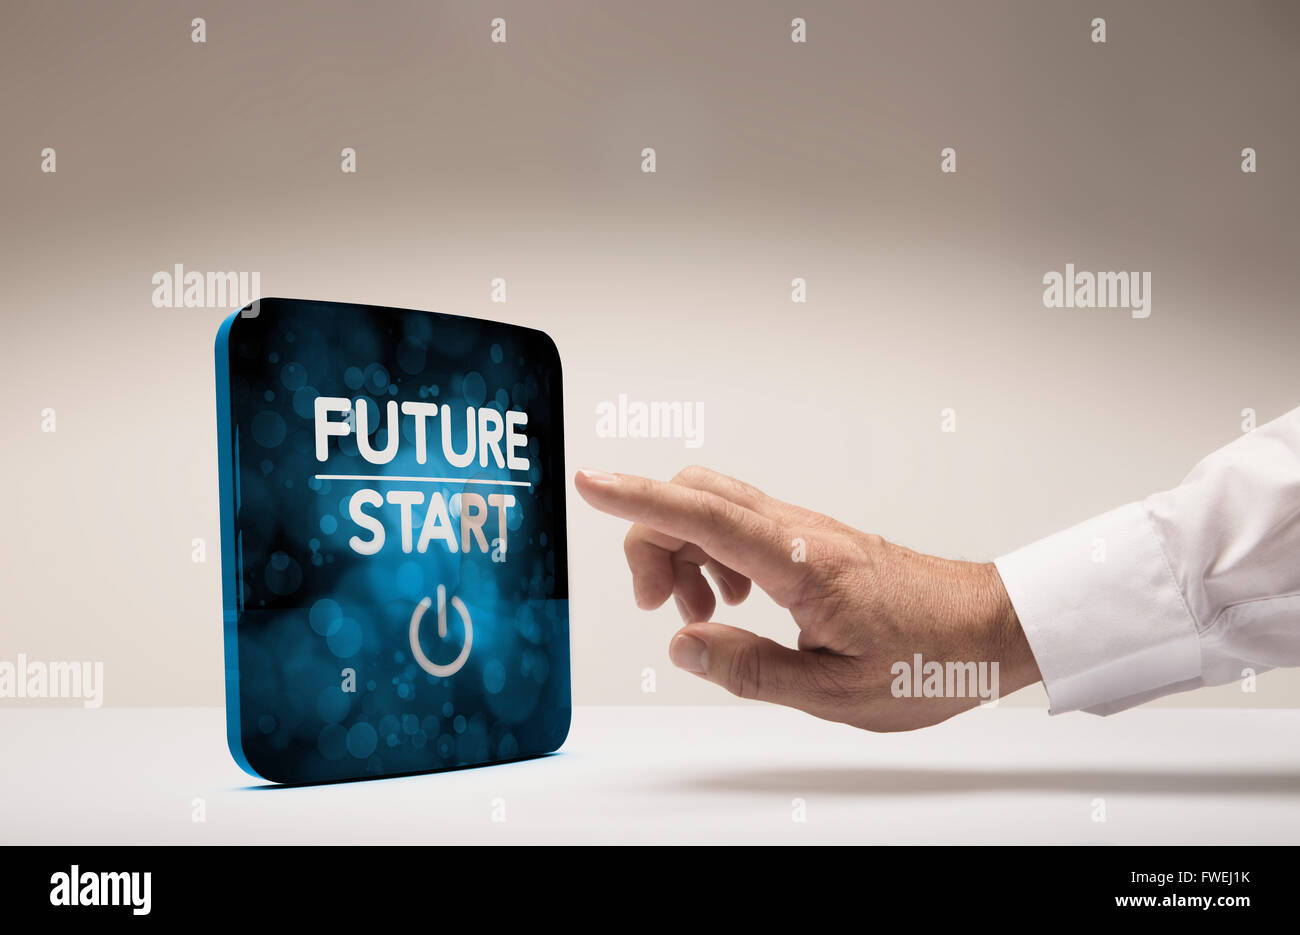 Finger about to press modern screen with the text future start, beige background. Concept image for illustration - Stock Image